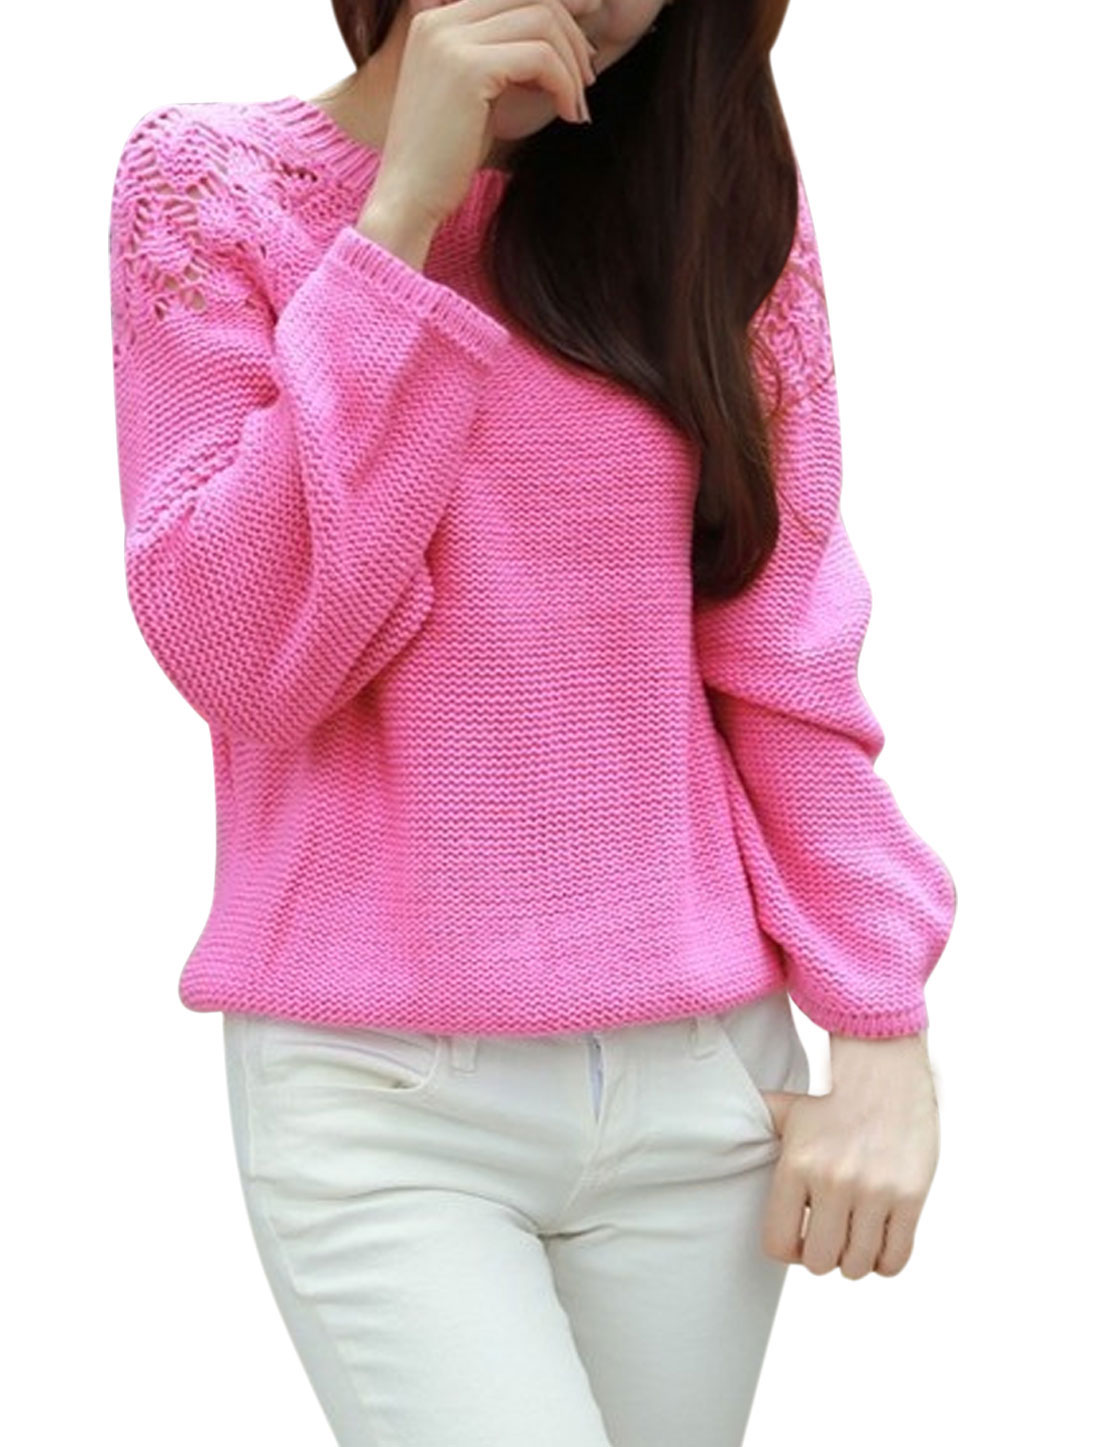 Lady Raglan Sleeve Crochet Hollow Out Detail Casual Sweater Fuchsia XS